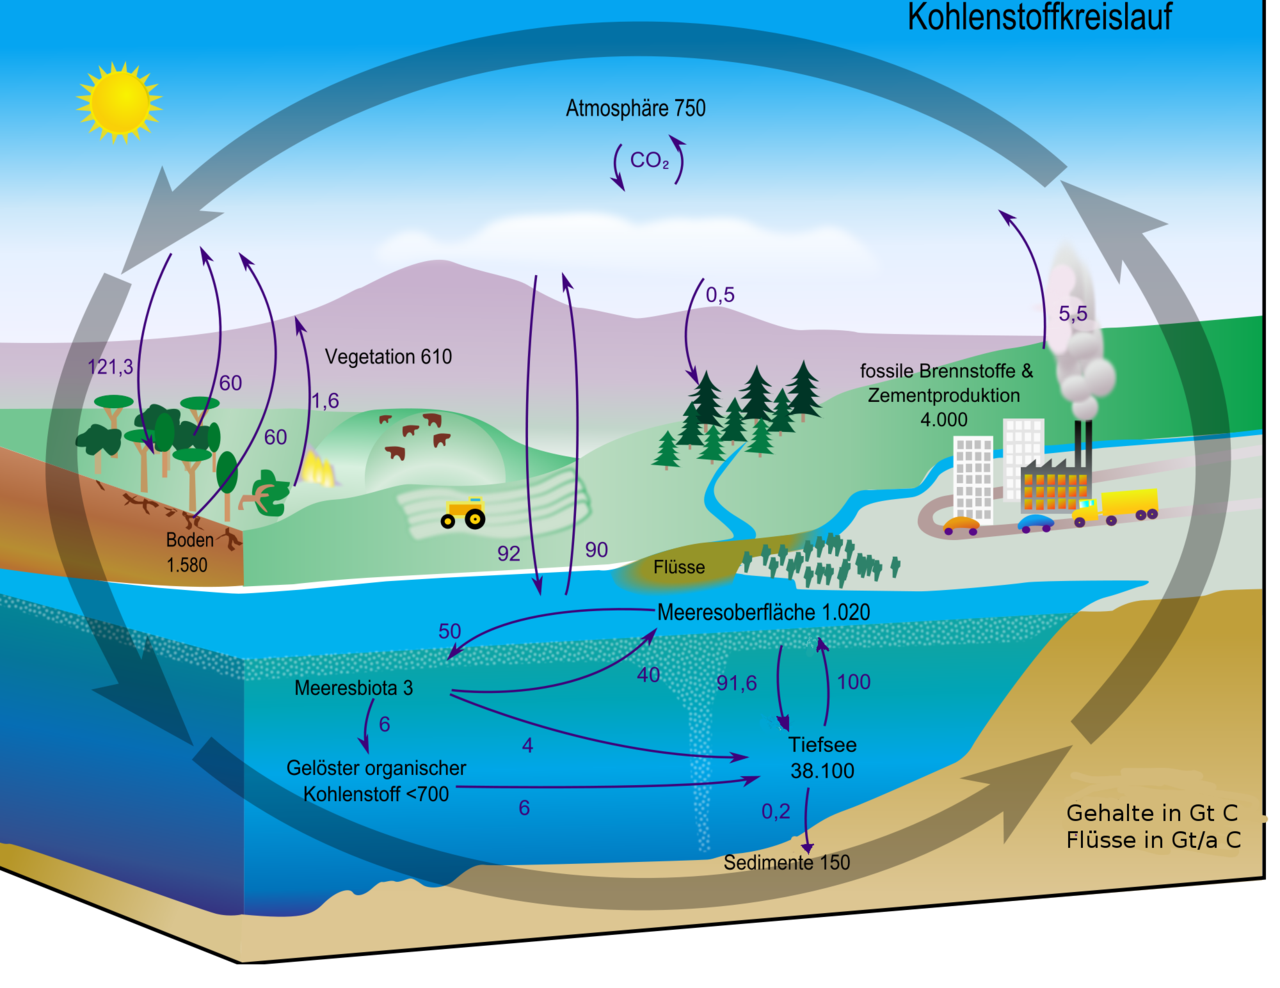 diagram of the kidney in the body file:carbon cycle-cute diagram-german.png - wikimedia commons diagram of the hydrosphere #7